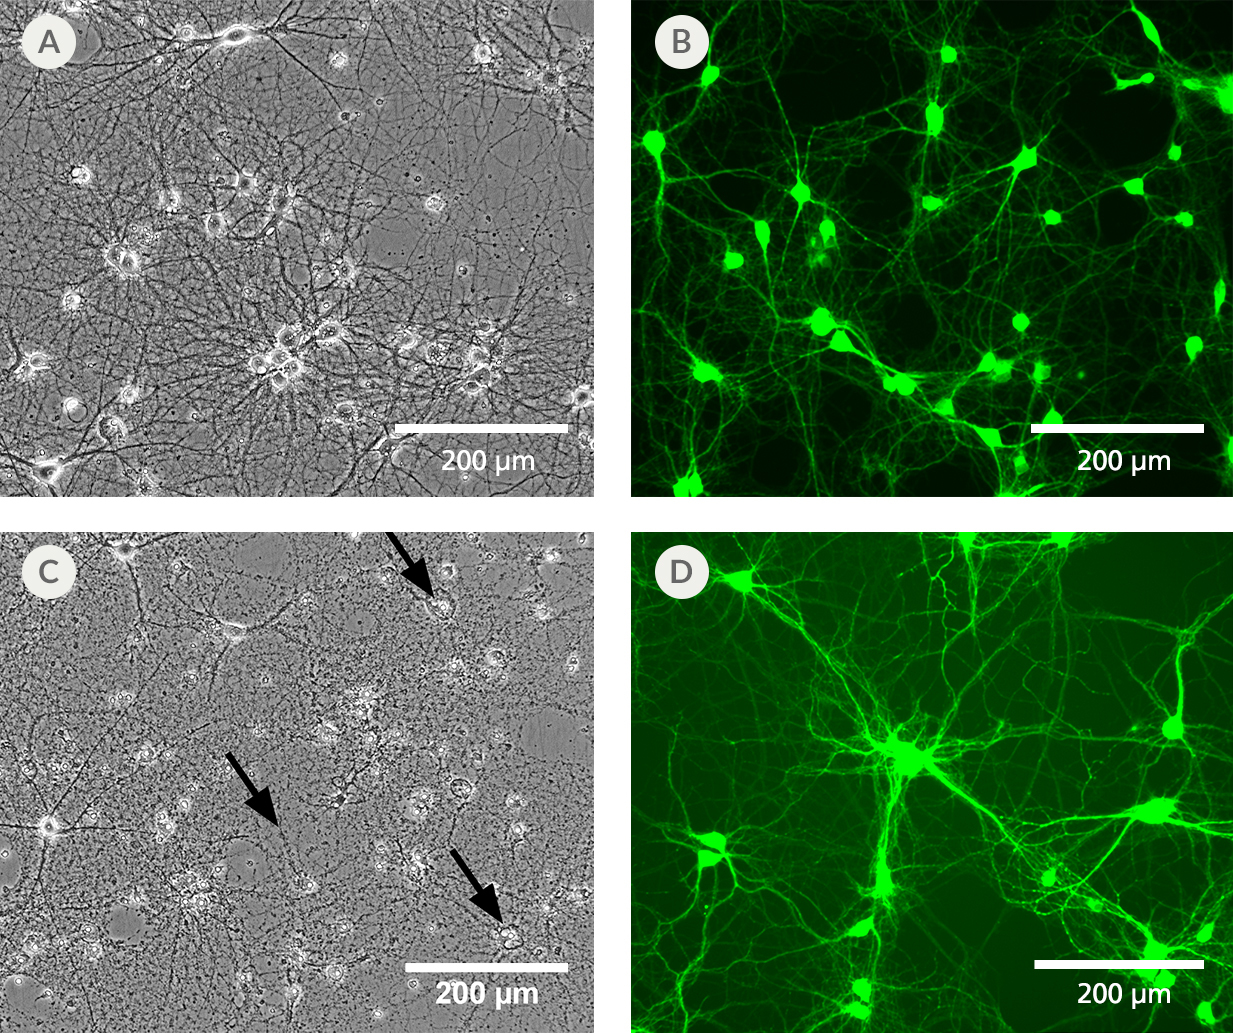 Culturing neurons in BrainPhys™ Imaging Optimized Medium reduces phototoxicity after blue light exposure and autofluorescence at a mean emission of 525 nm